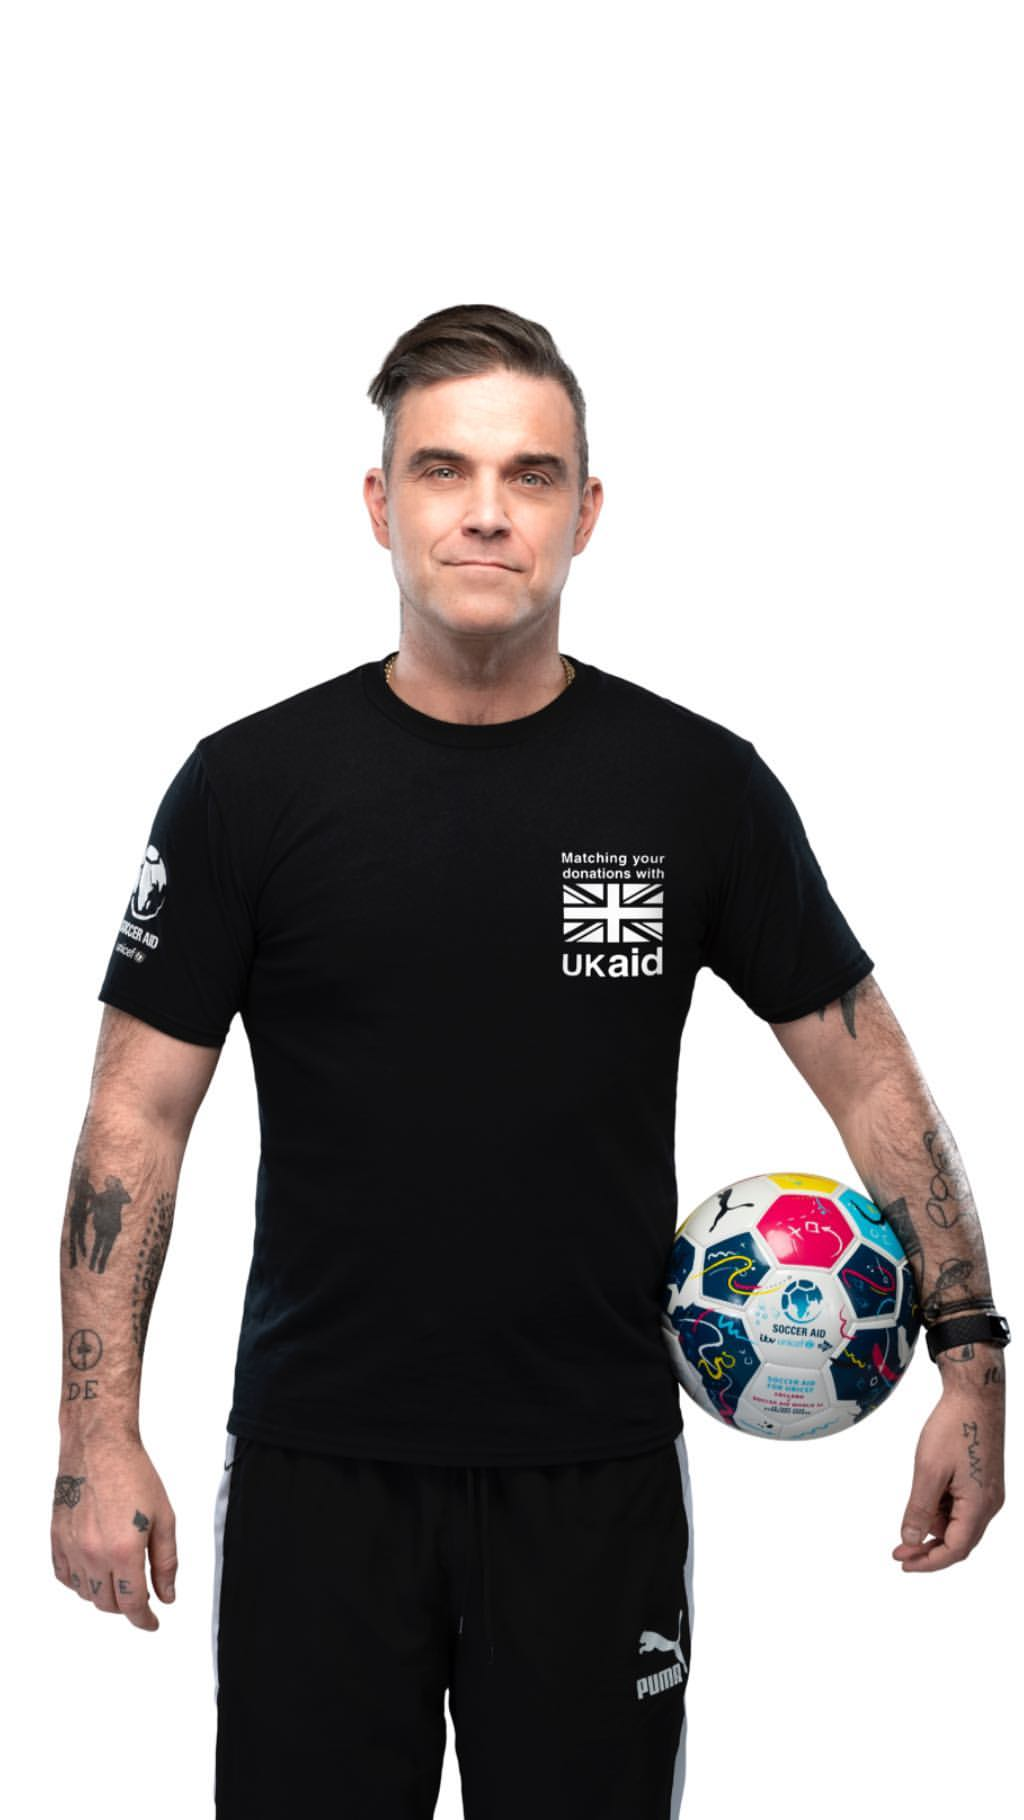 2019 04 25 soccer aid pic 1